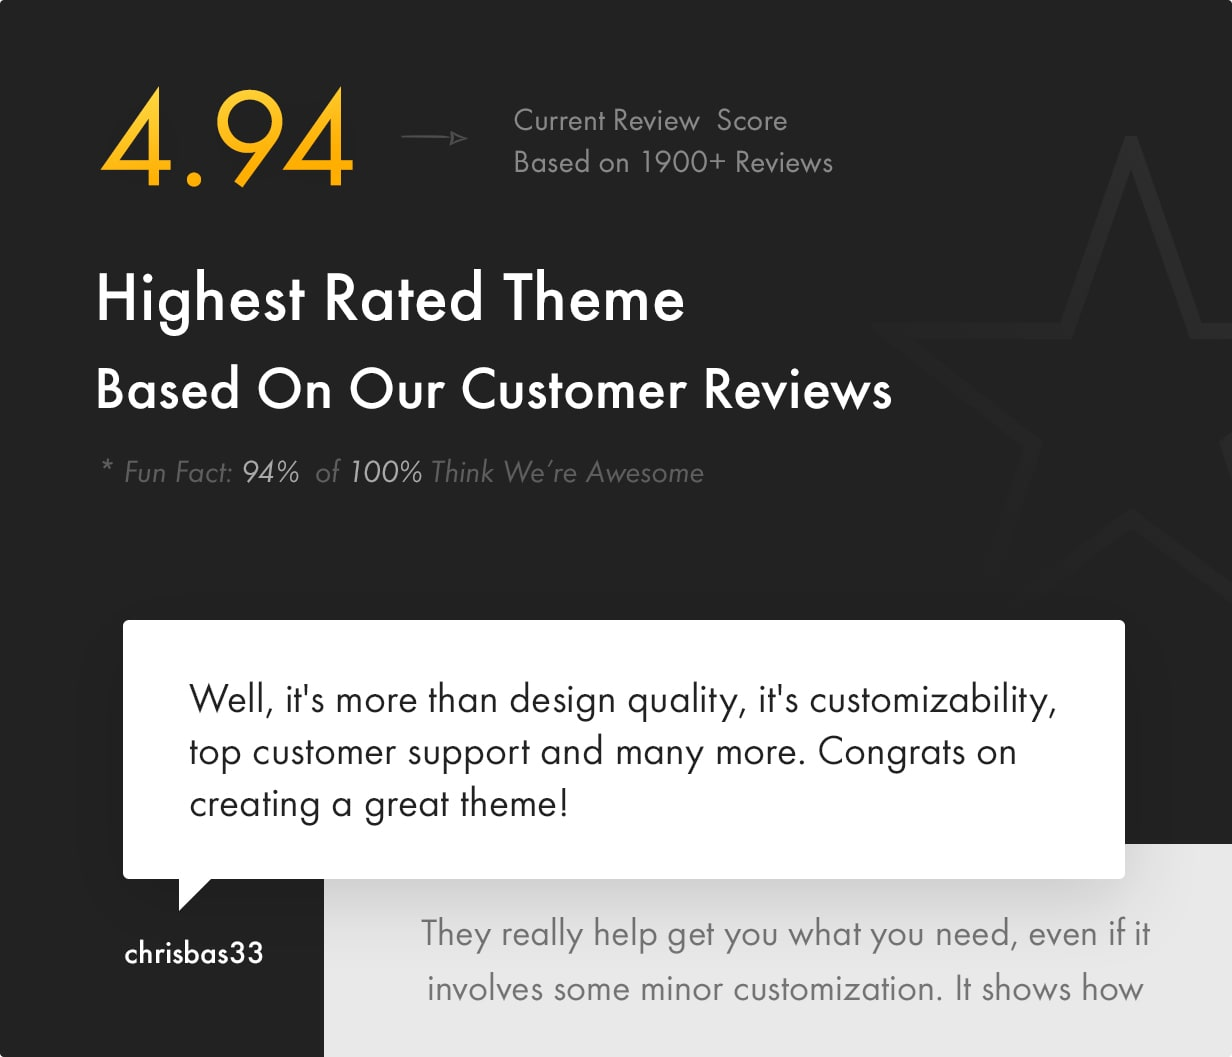 Top Rated Theme - 4.93 of 5.0